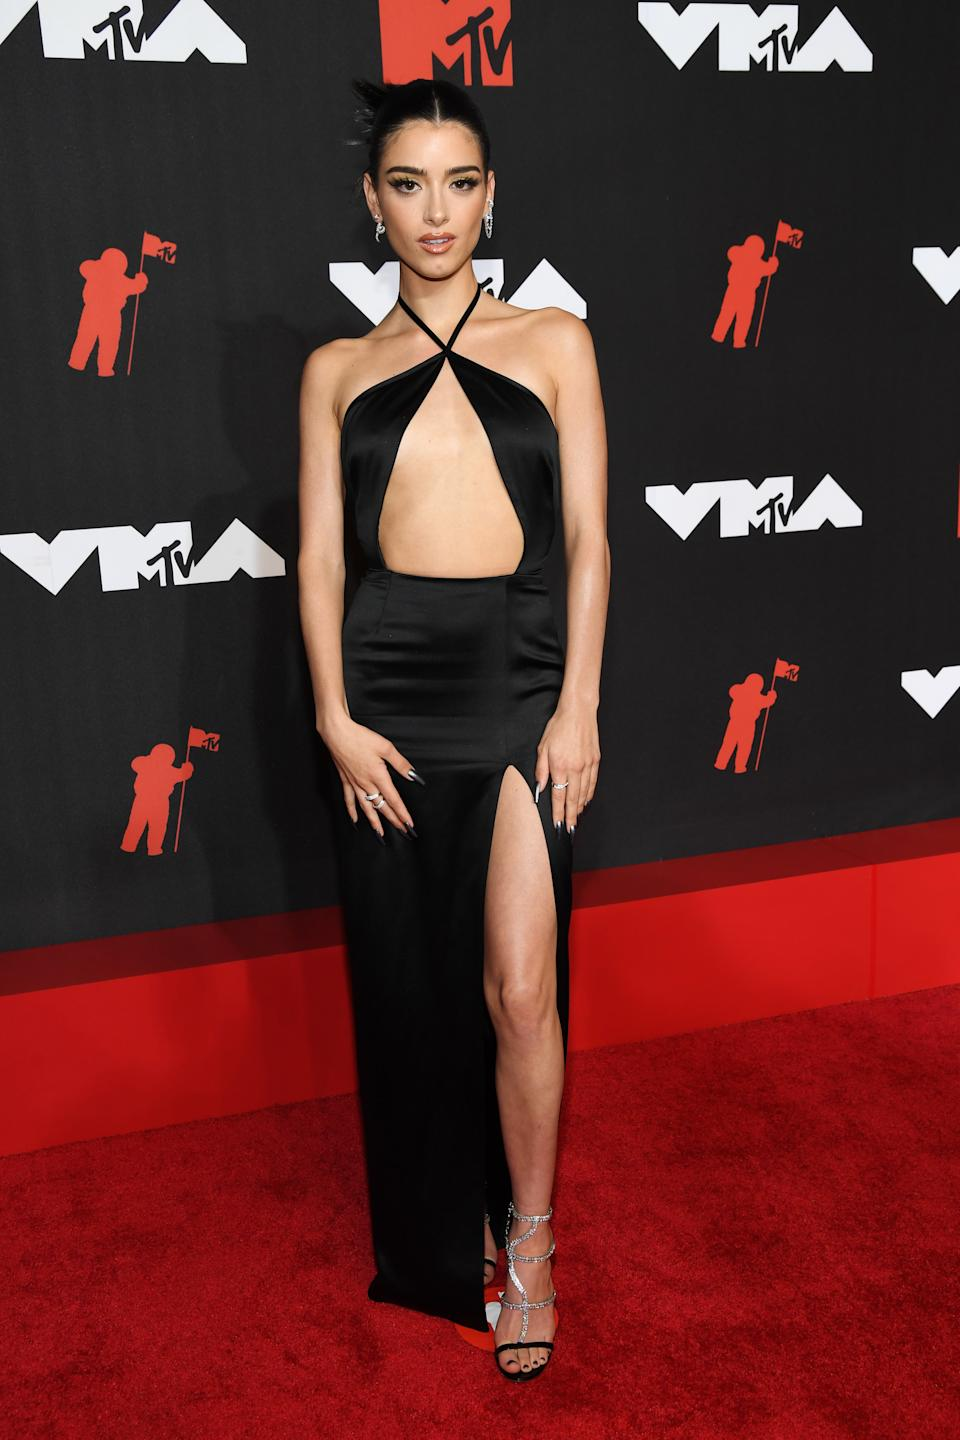 Dixie D'Amelio attends the 2021 MTV Video Music Awards at Barclays Center